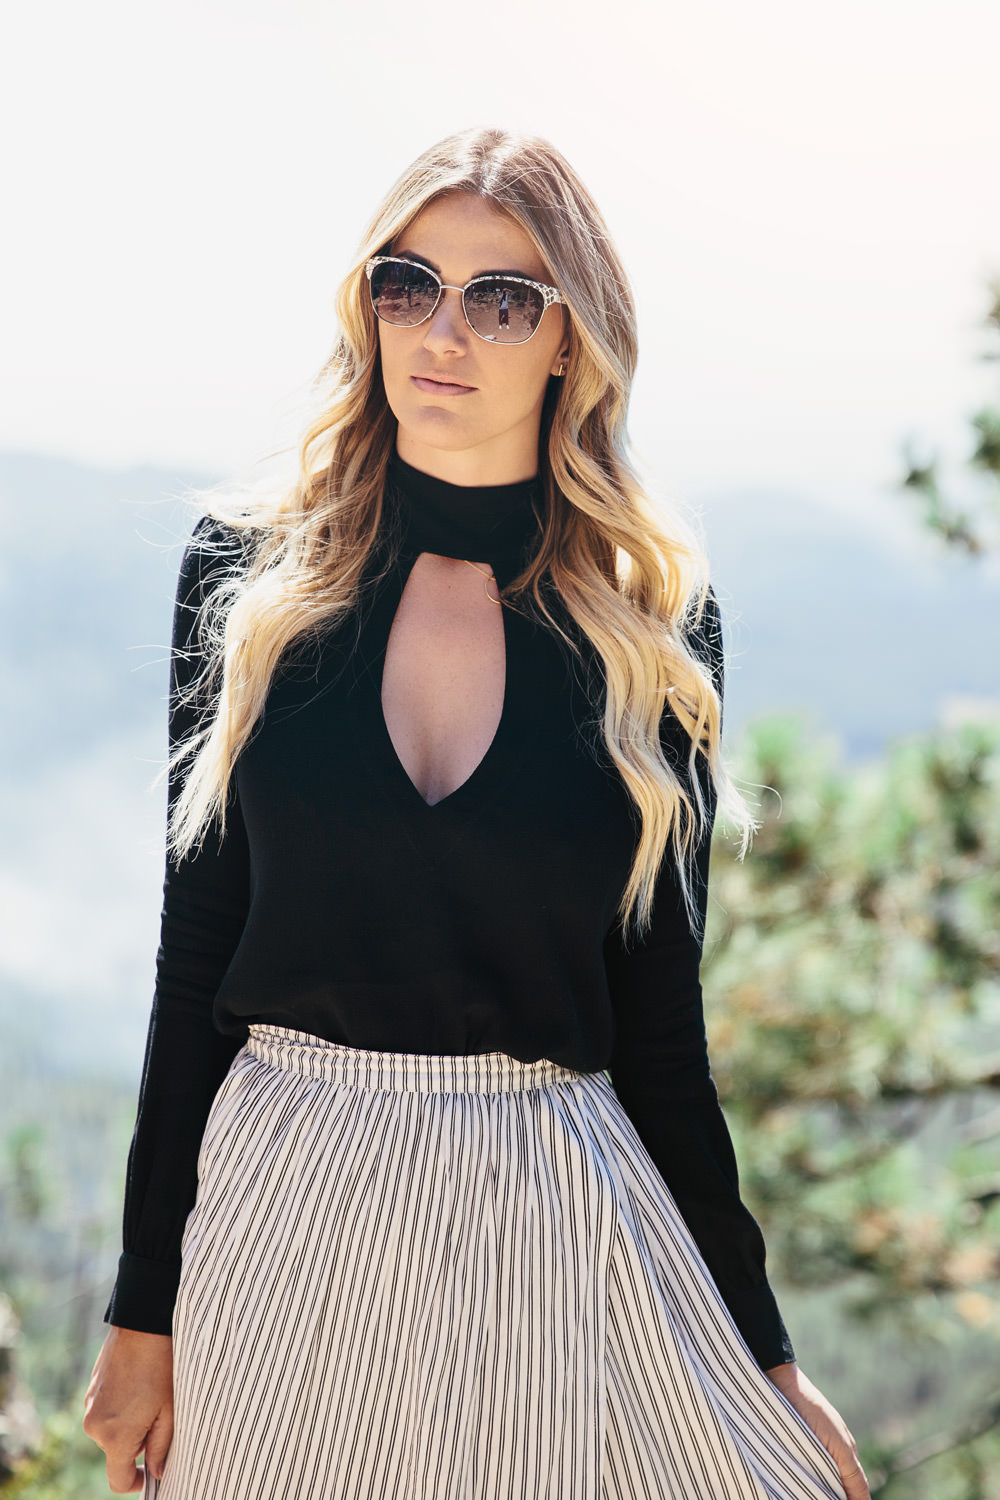 Dash of Darling styles a keyhole neckline top with a maxi skirt and DVF sunglasses while exploring Payson Arizona in the Fall.